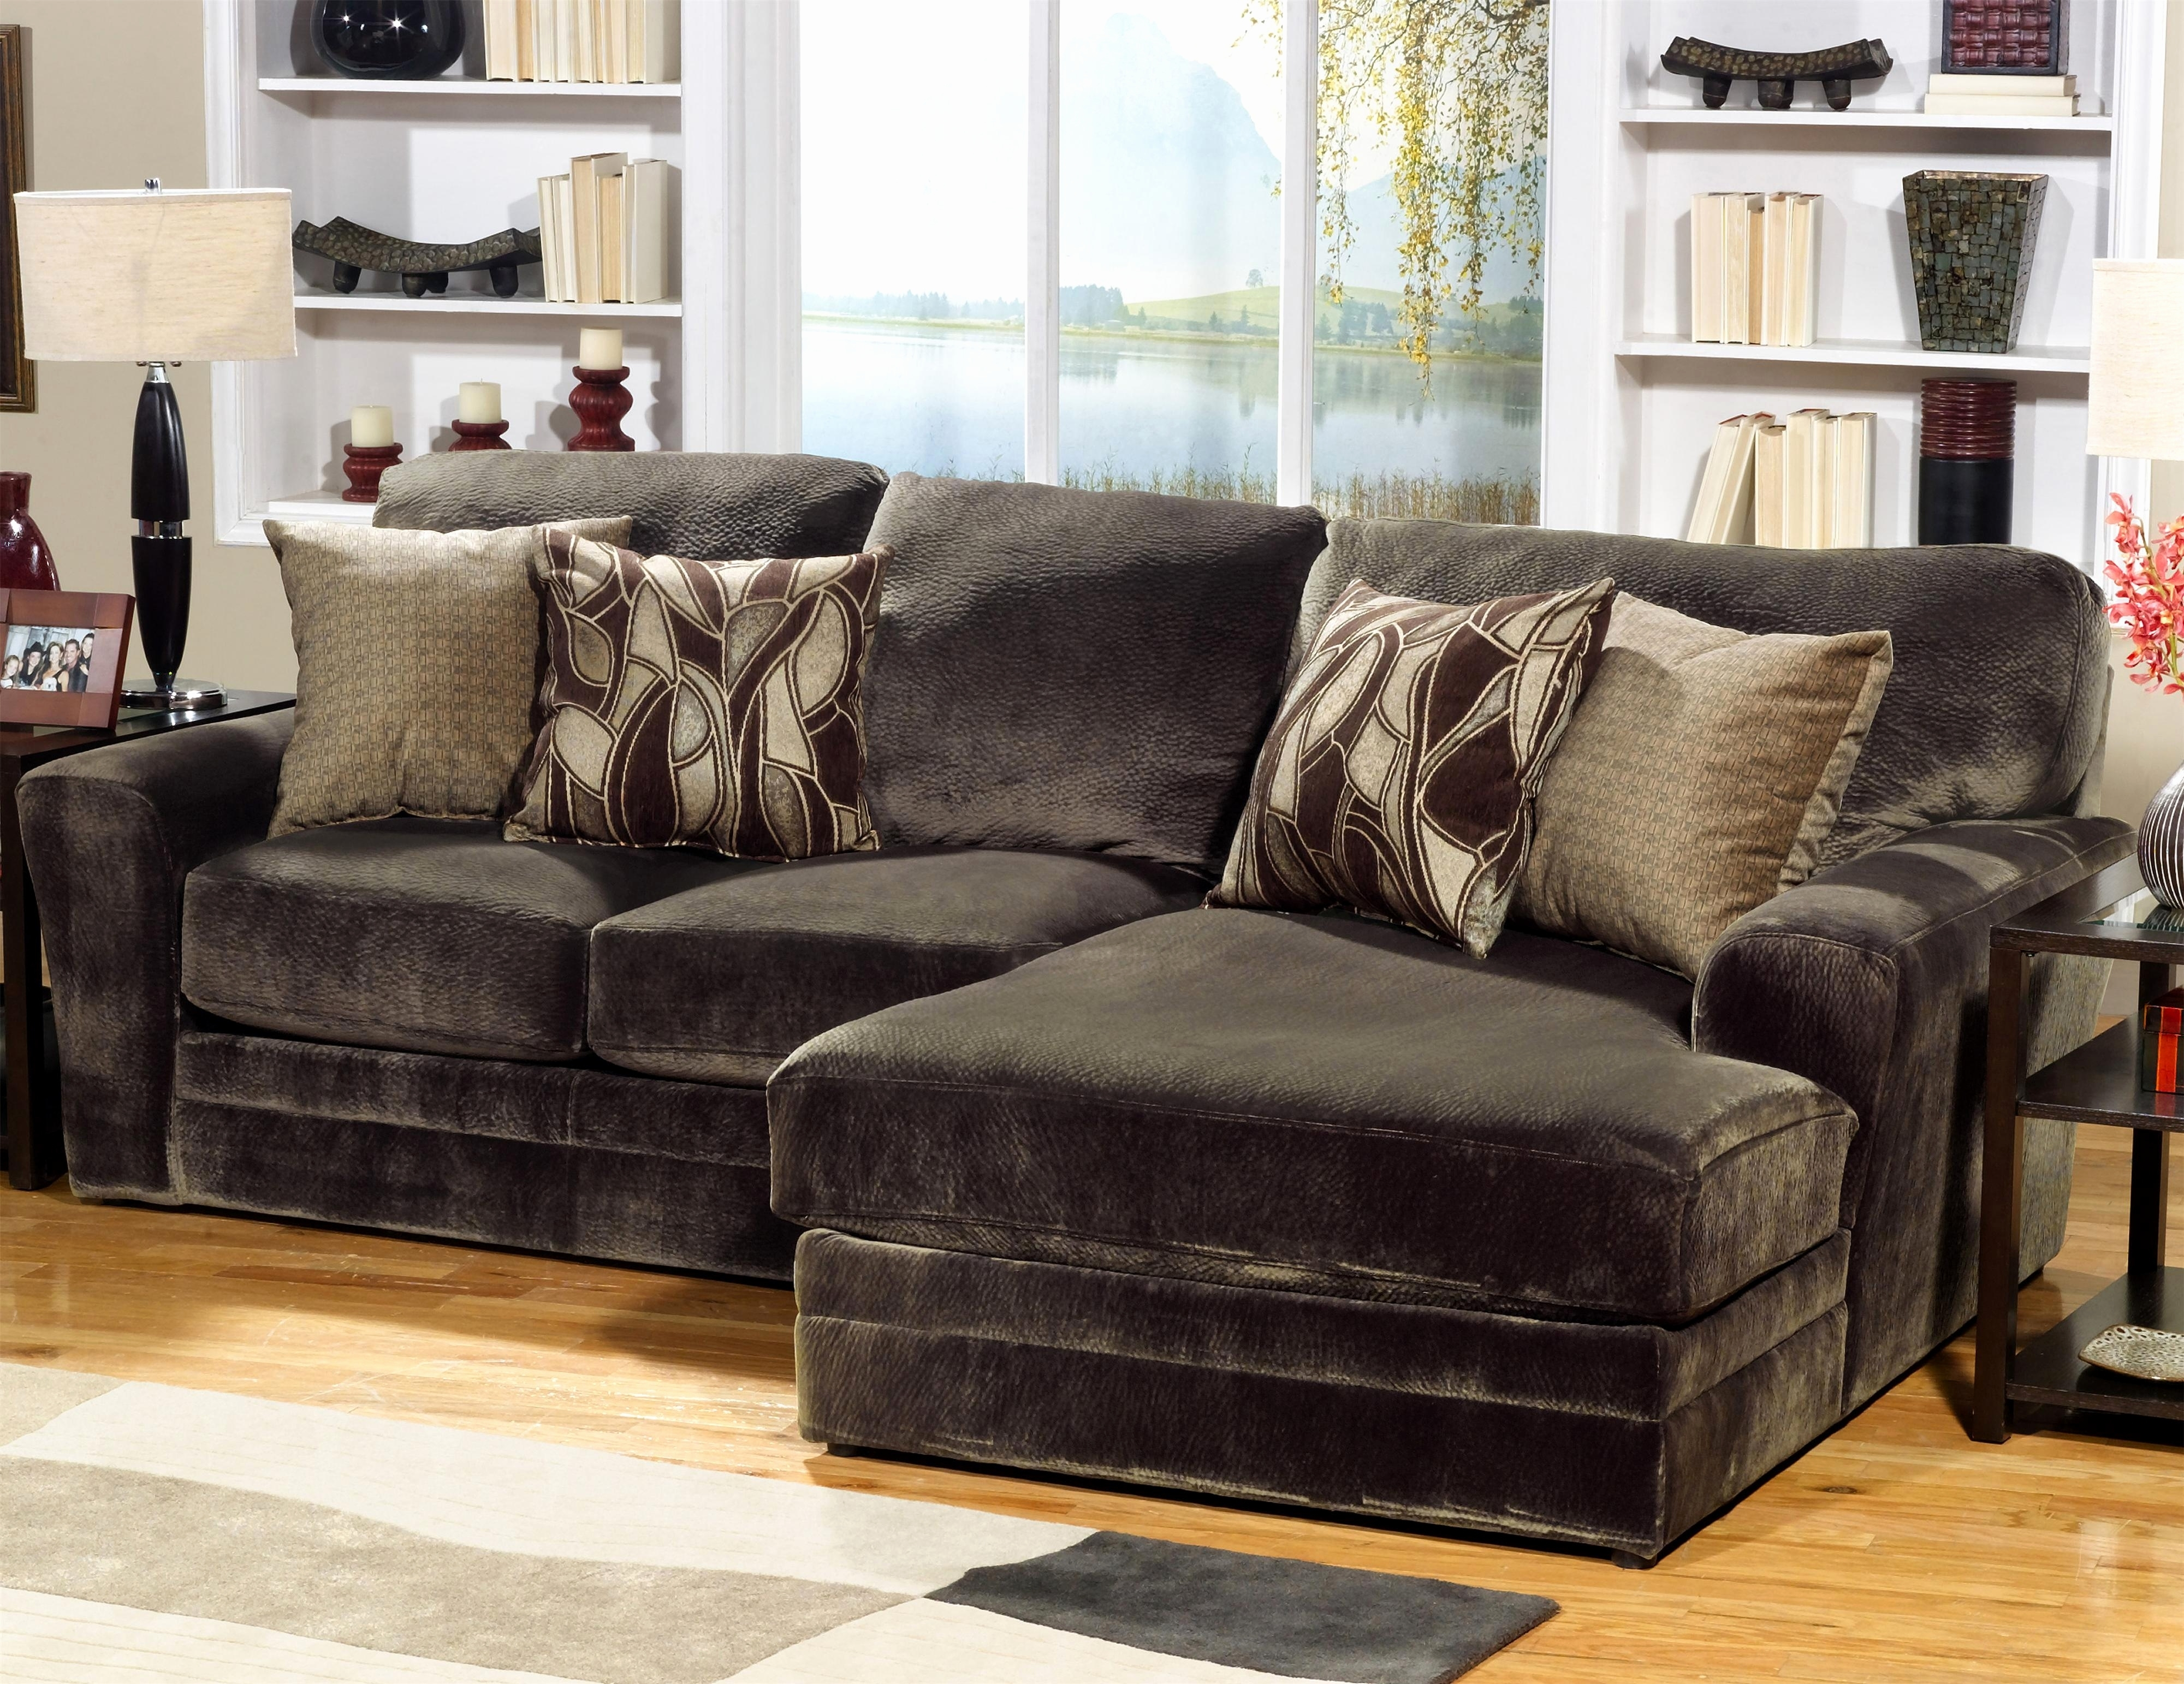 112 lancaster leather sofa costco bed uk 10 ideas of pa sectional sofas